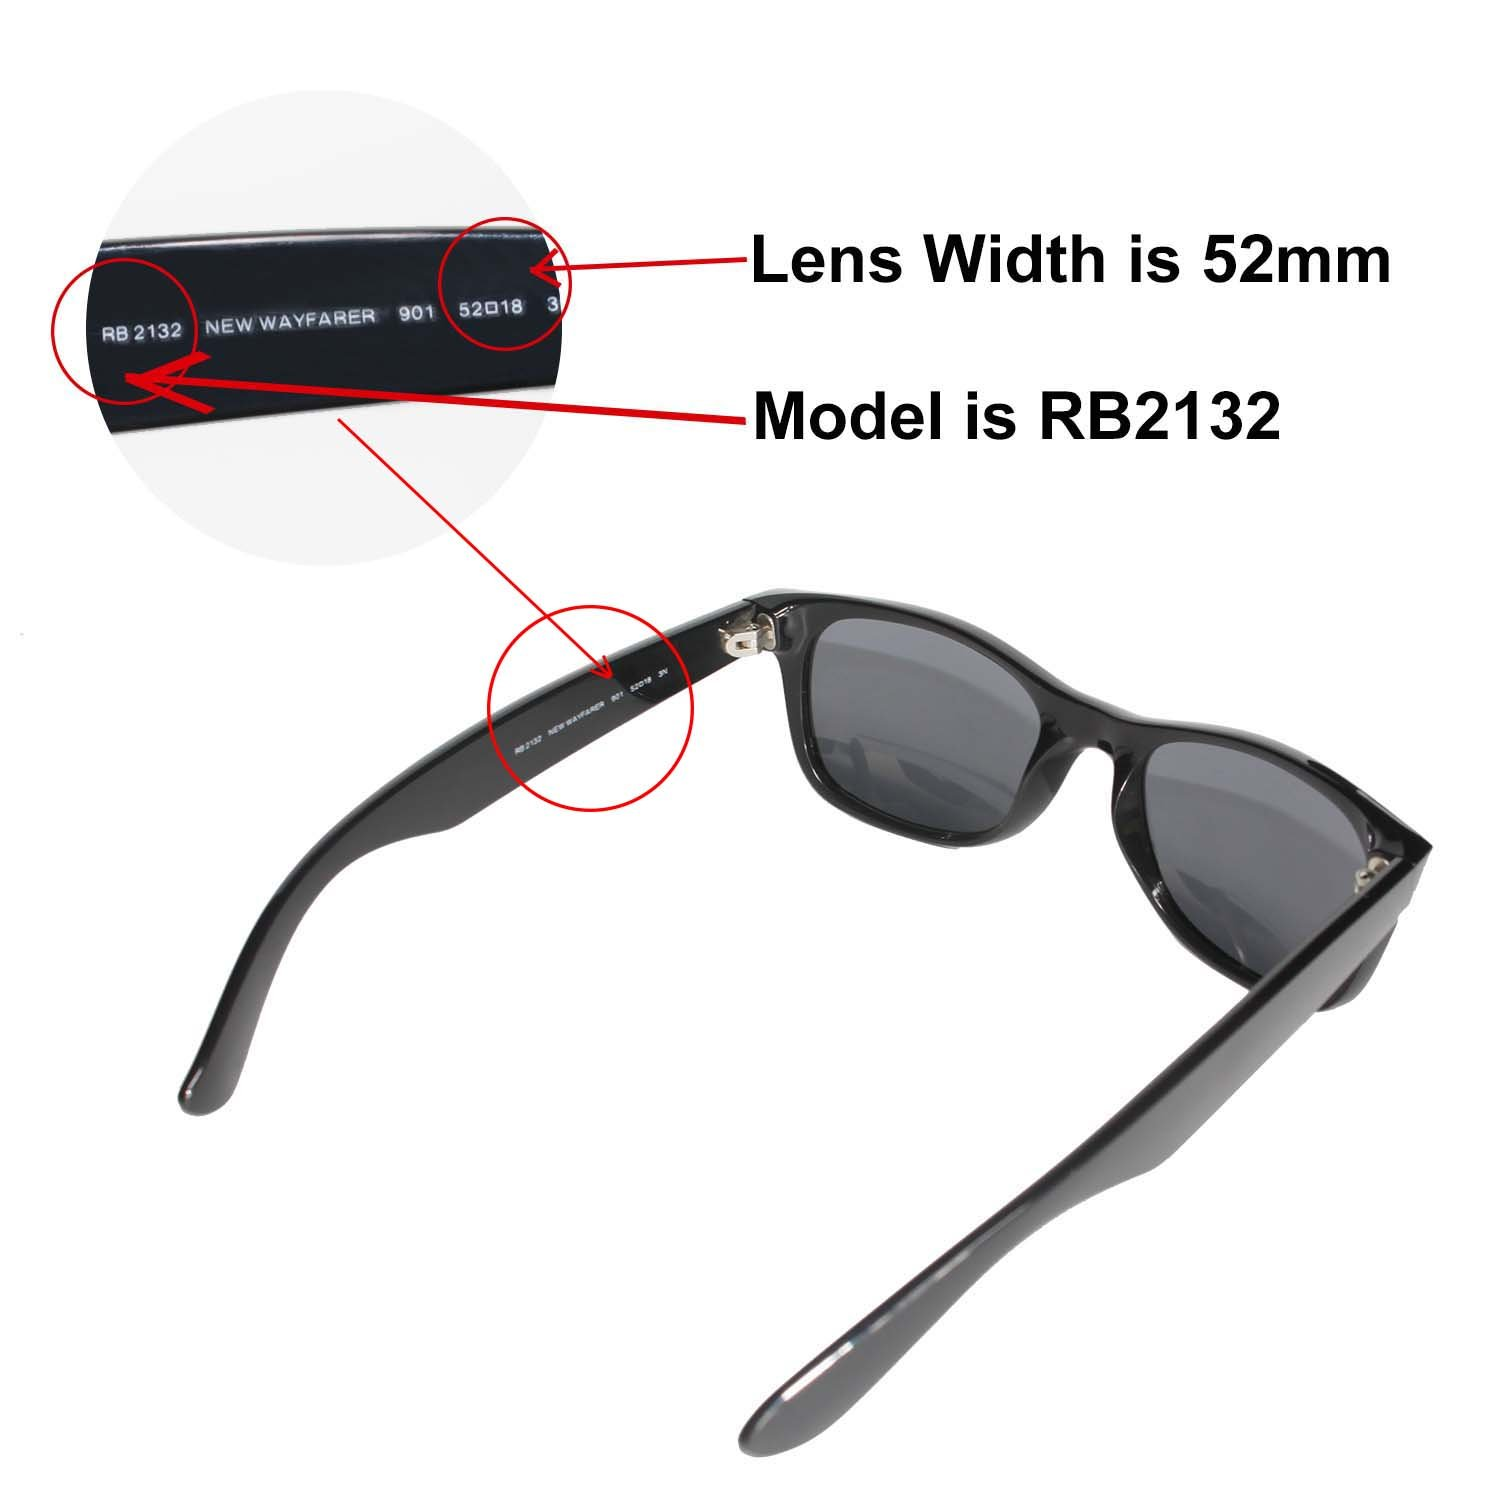 f7ae18c6162 Amazon.com  Walleva Replacement Lenses for Ray-Ban Wayfarer RB2132 52mm  Sunglasses - 9 Options Available (24K Gold Mirror Coated - Polarized)   Clothing